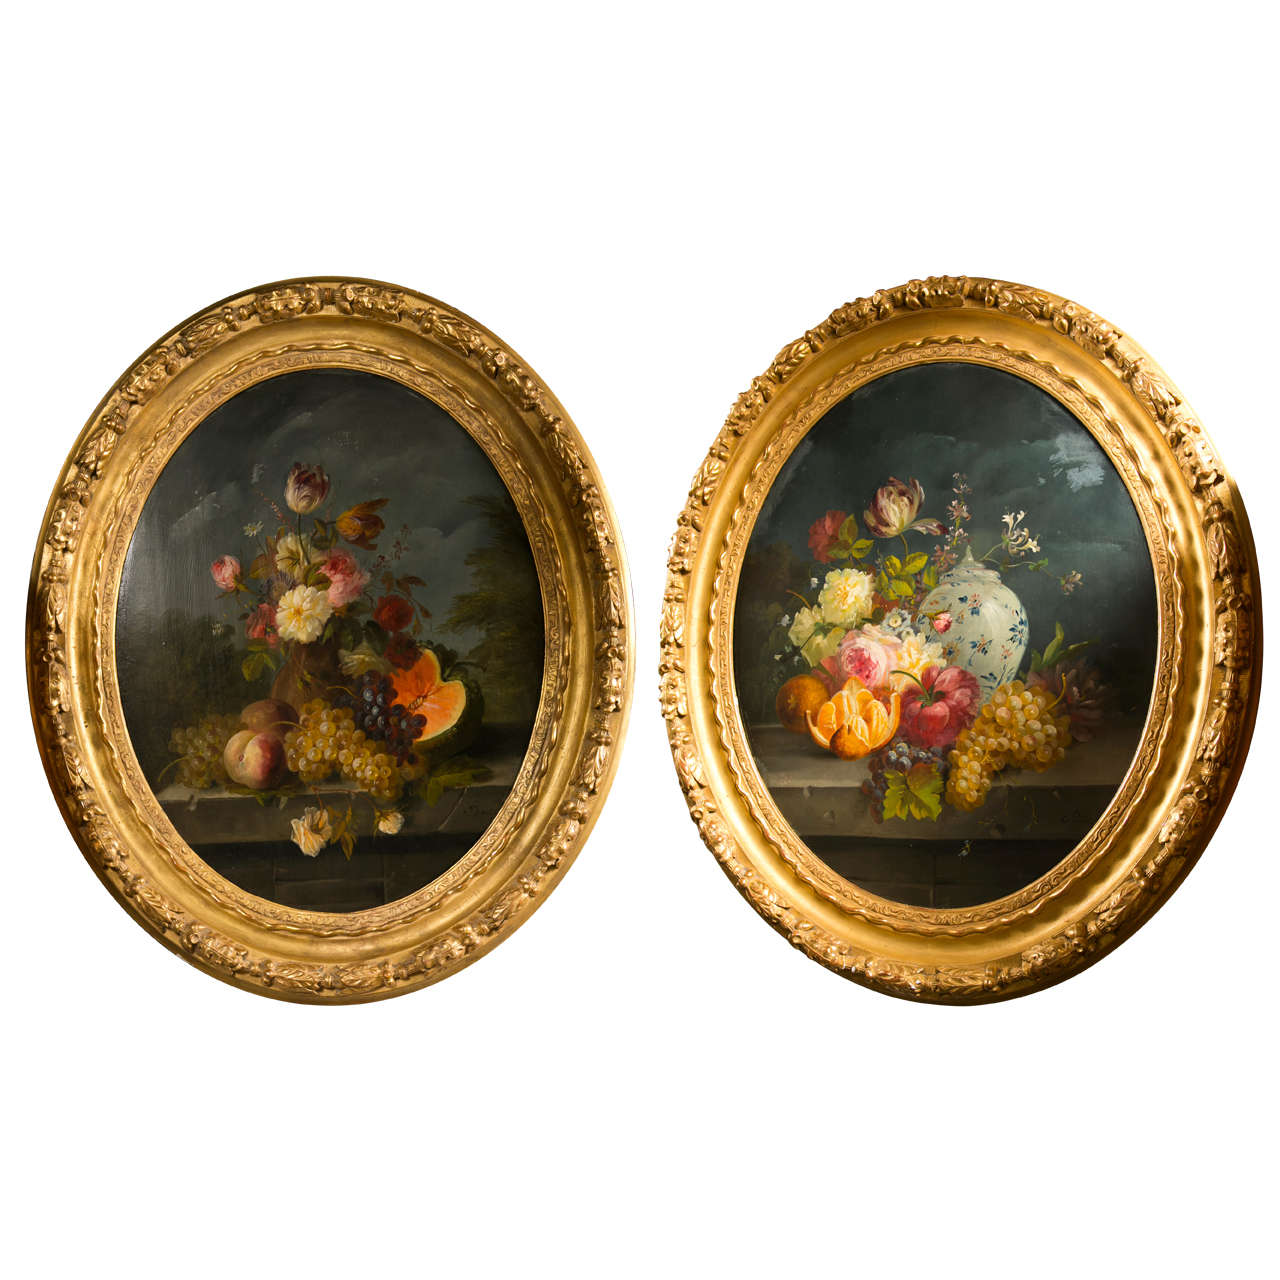 Pair of Oval Still Life Paintings